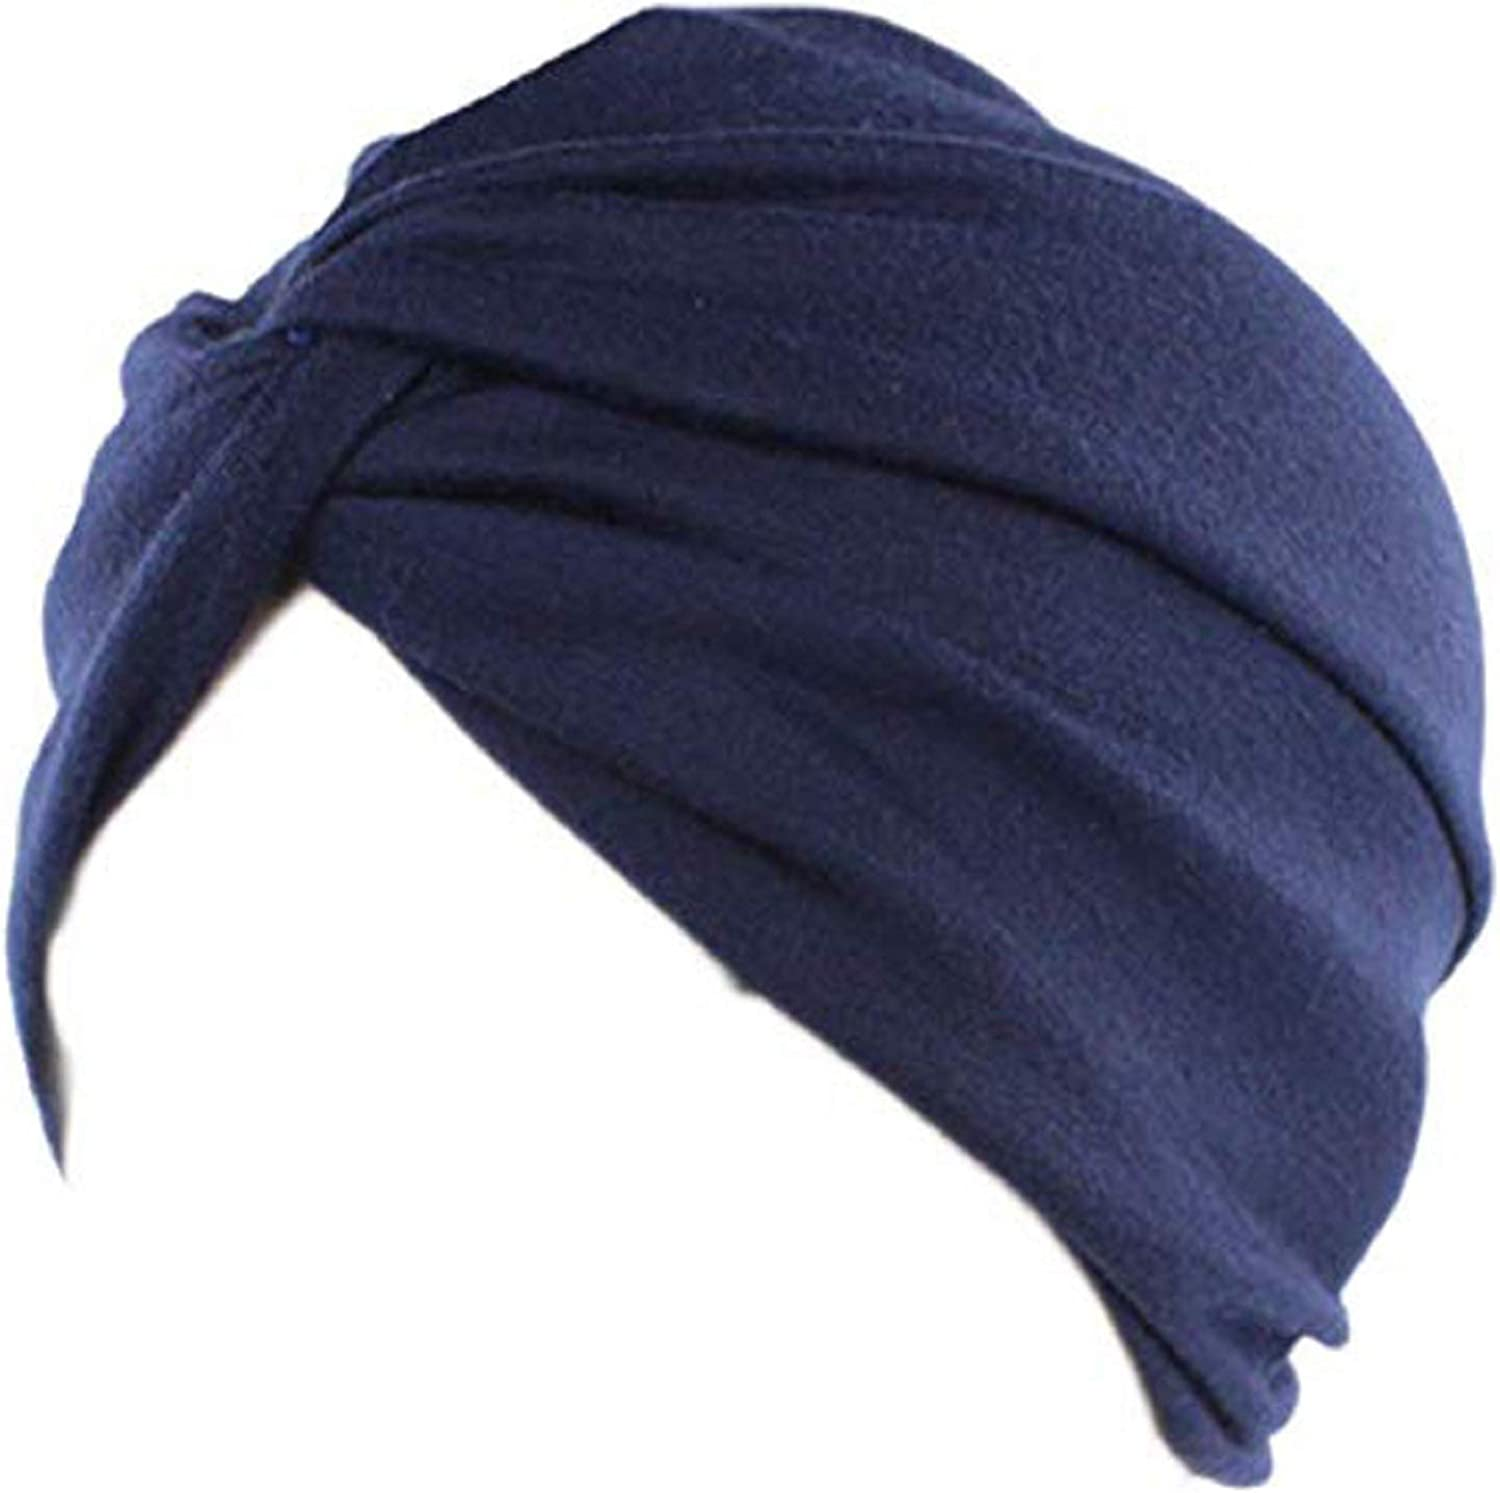 Ganves Women's Over item handling ☆ Sleep Soft Pre Tied India Beanie Cotton Chemo Inventory cleanup selling sale Cap